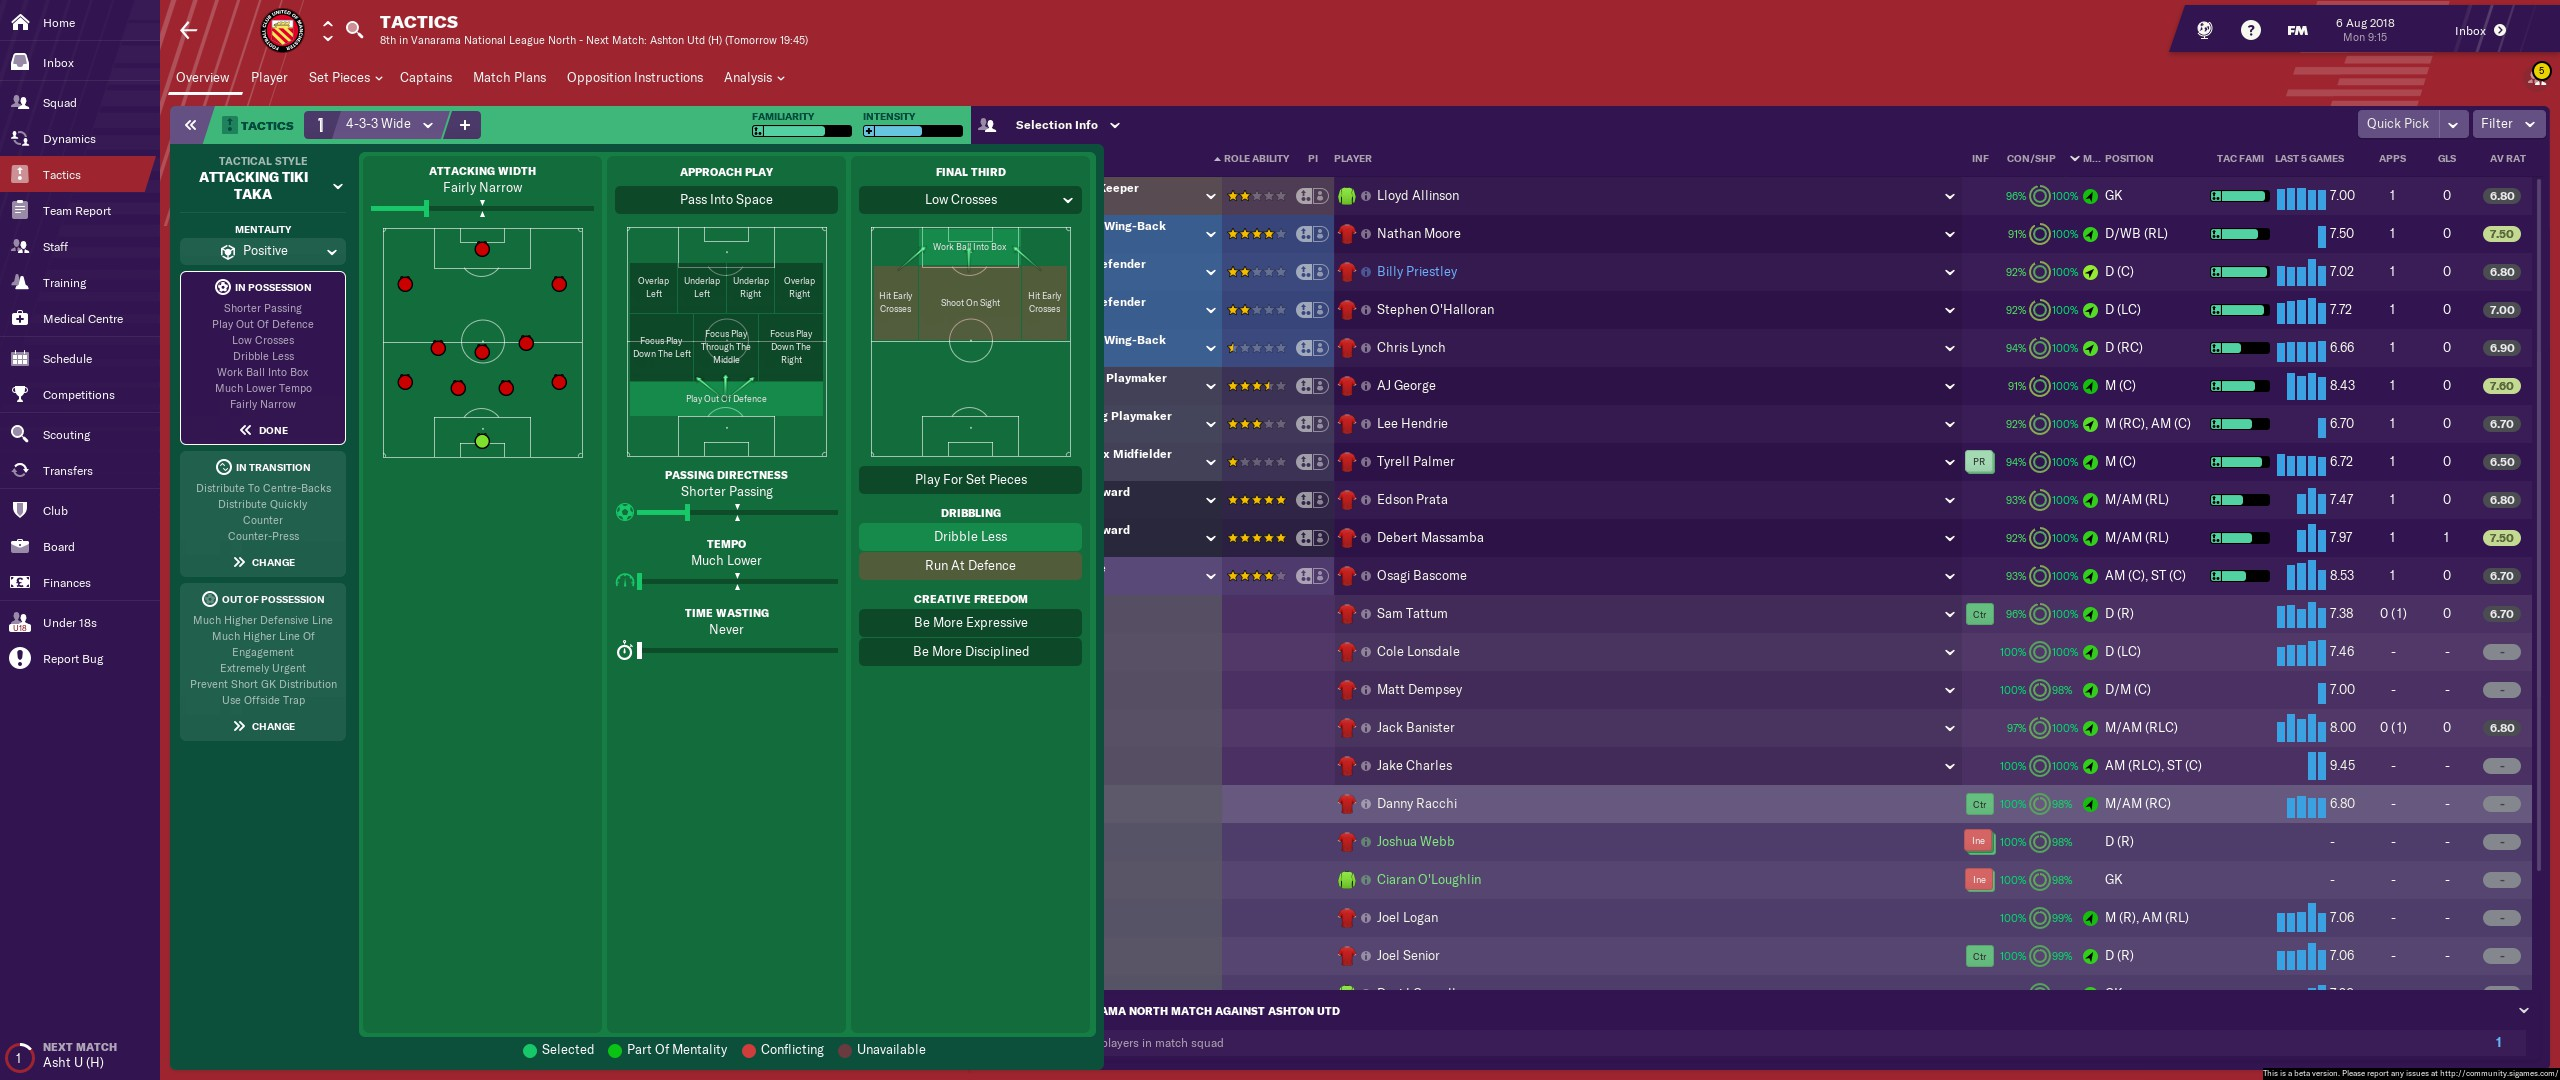 Football Manager 2019 Review - The Ballon d'Or of Games